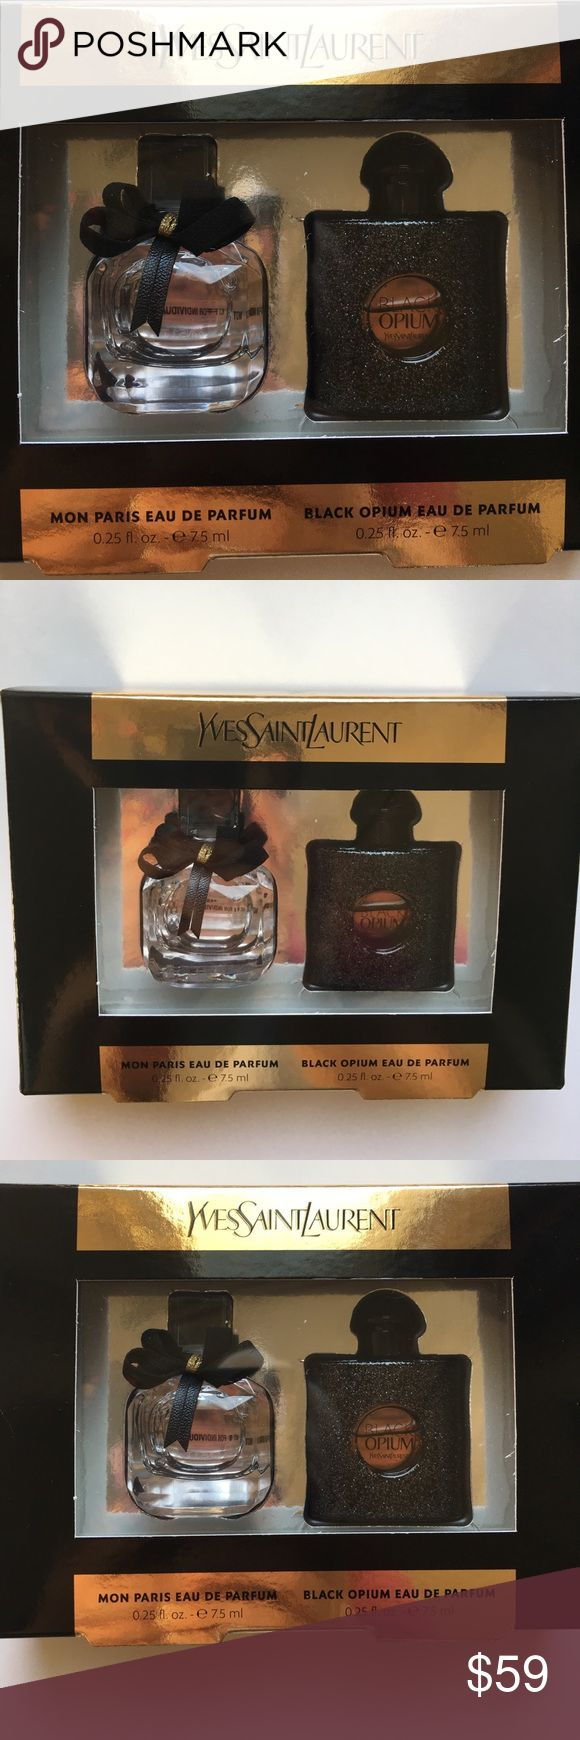 🍬Mon Paris & Black Opium MINI Duo Eau De Parfum Deluxe Size Samples/Mini Dab Bottles. NOT Sprays! 0.25 oz/75 ml each. Brand new! AUTHENTIC! Yves Saint Laurent Makeup